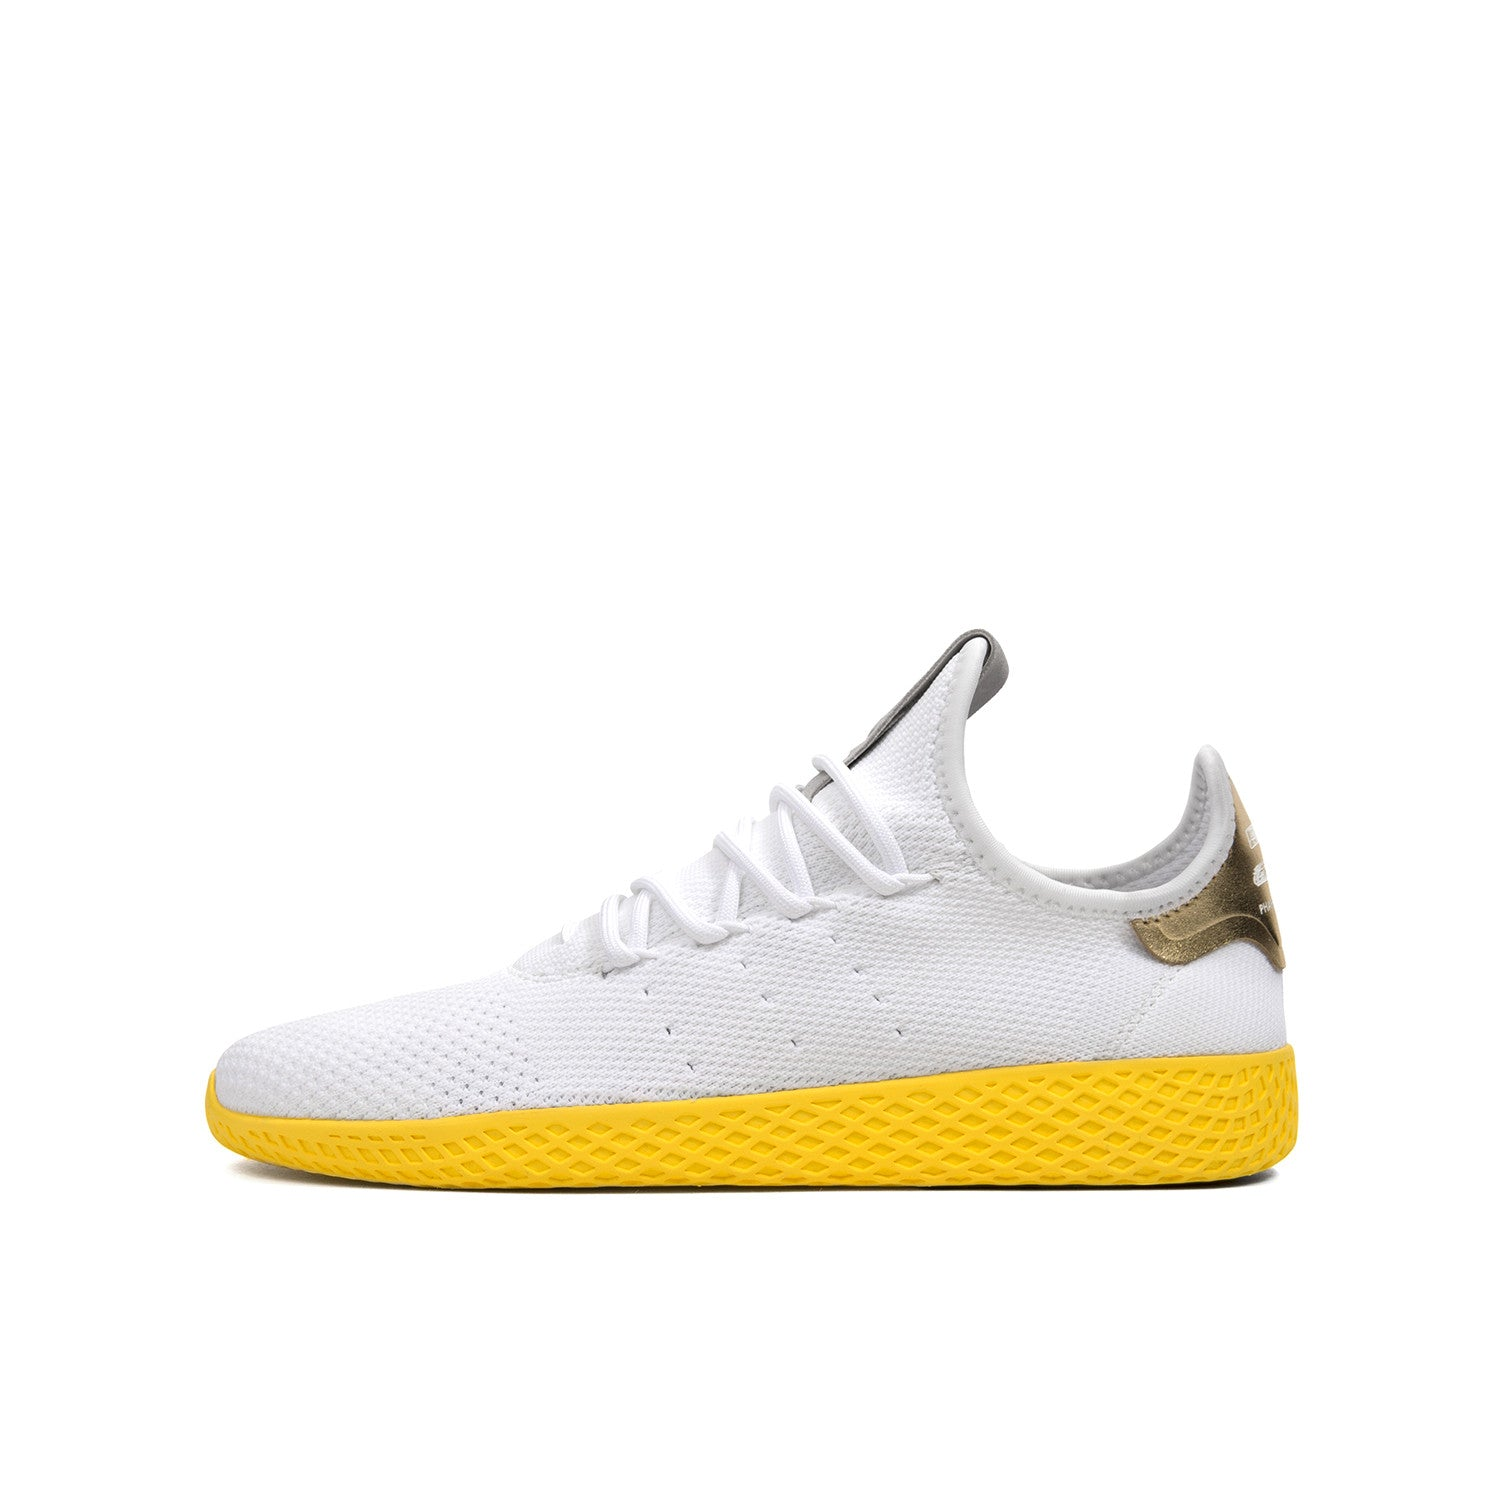 adidas originals x pharrell williams tennis hu white. Black Bedroom Furniture Sets. Home Design Ideas